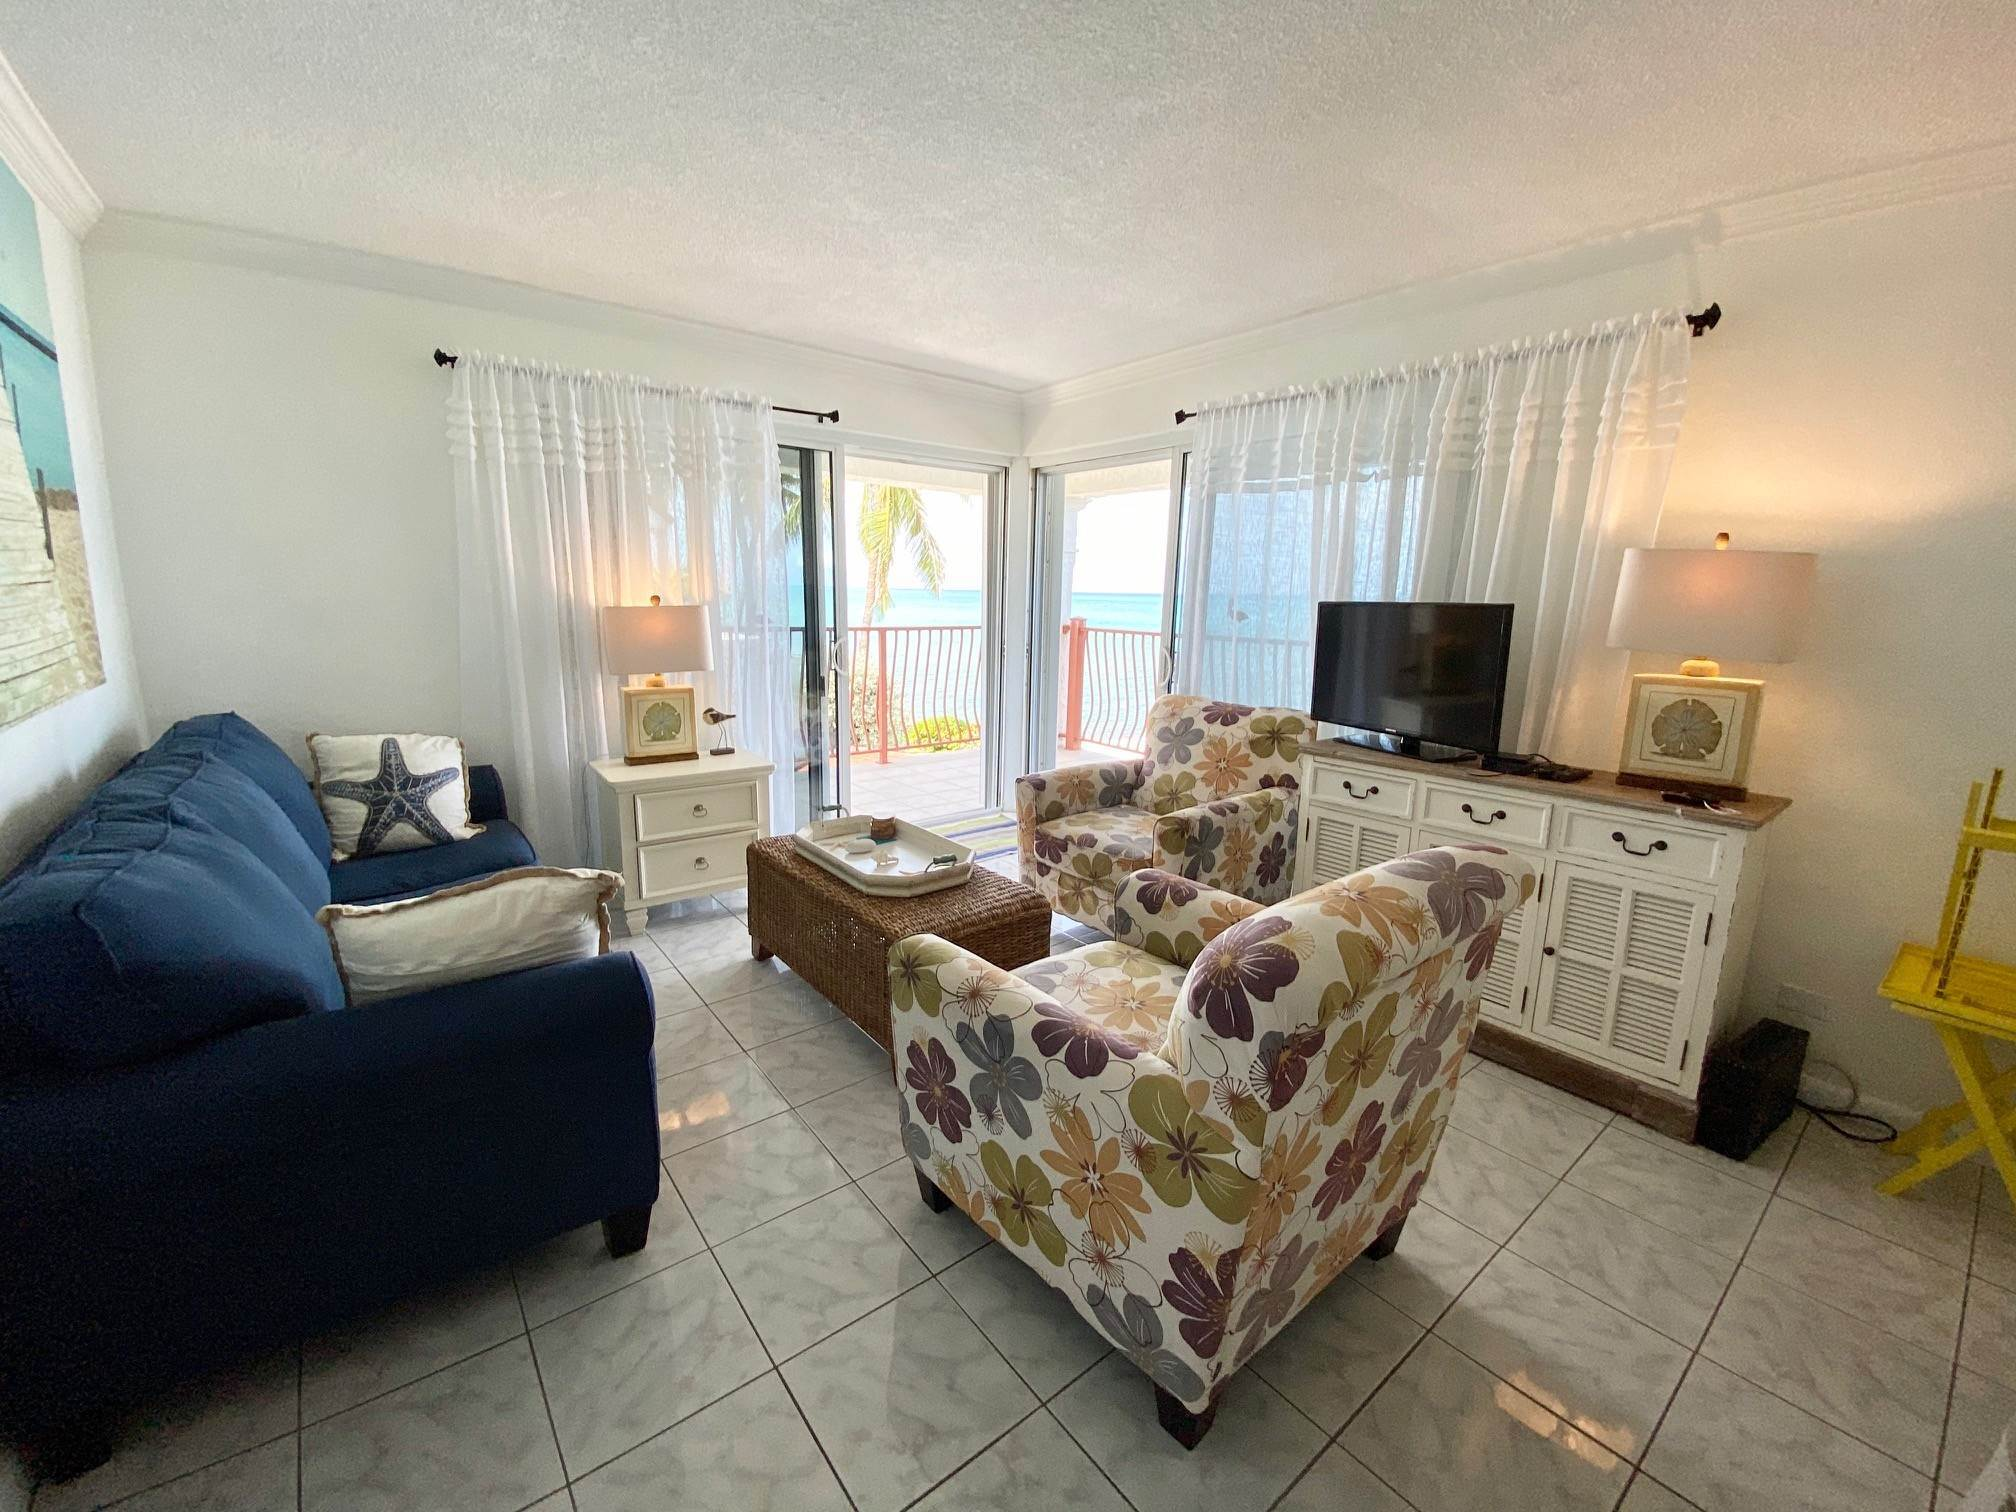 Co-op / Condo for Rent at Excellent views from this 2nd floor condo Delaporte Point, Nassau And Paradise Island, Bahamas